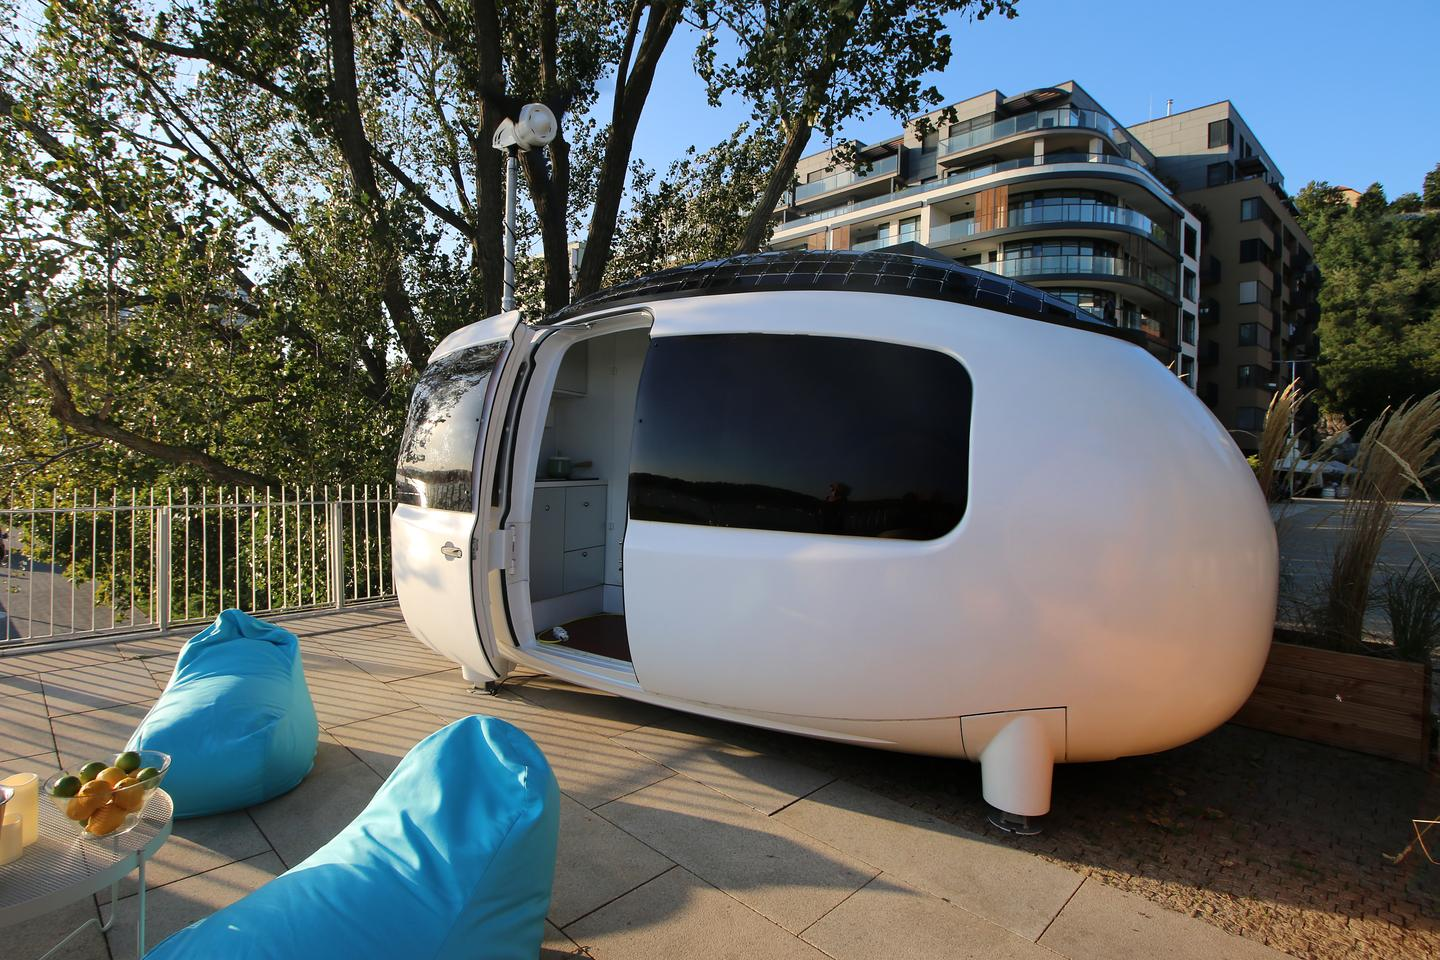 The original Ecocapsule, shown, has the same dimensions as the Space. Both measure 4.67 x 2.2 m (15 x 7.2 ft)